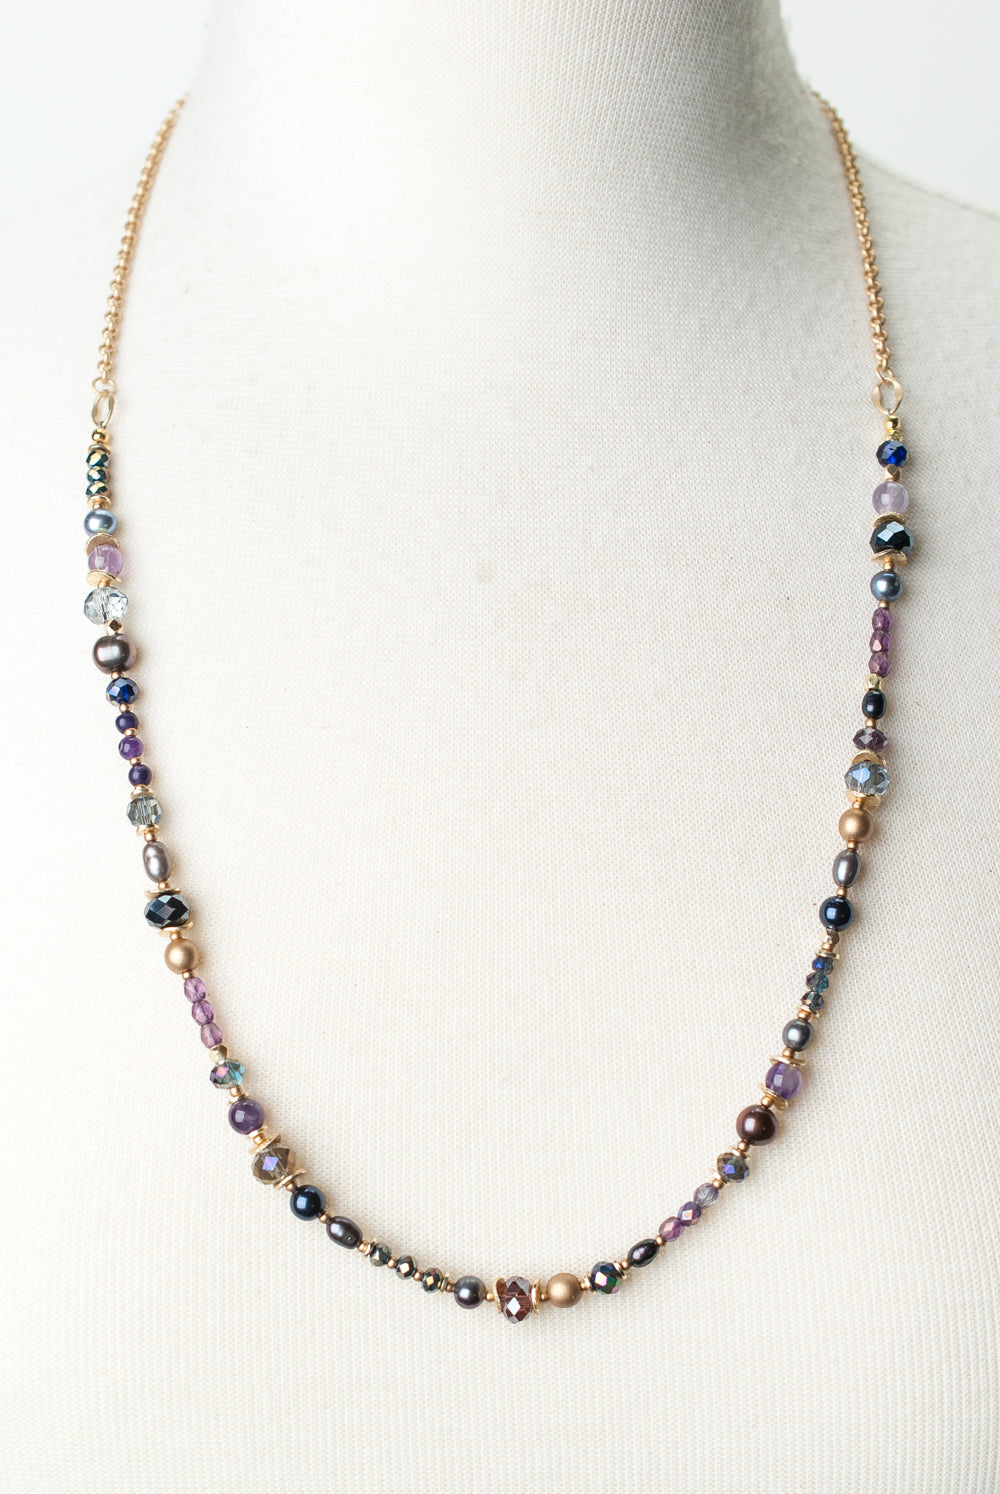 "Midnight 27-29"" Amethyst, Czech Glass, Crystal Collage Necklace"